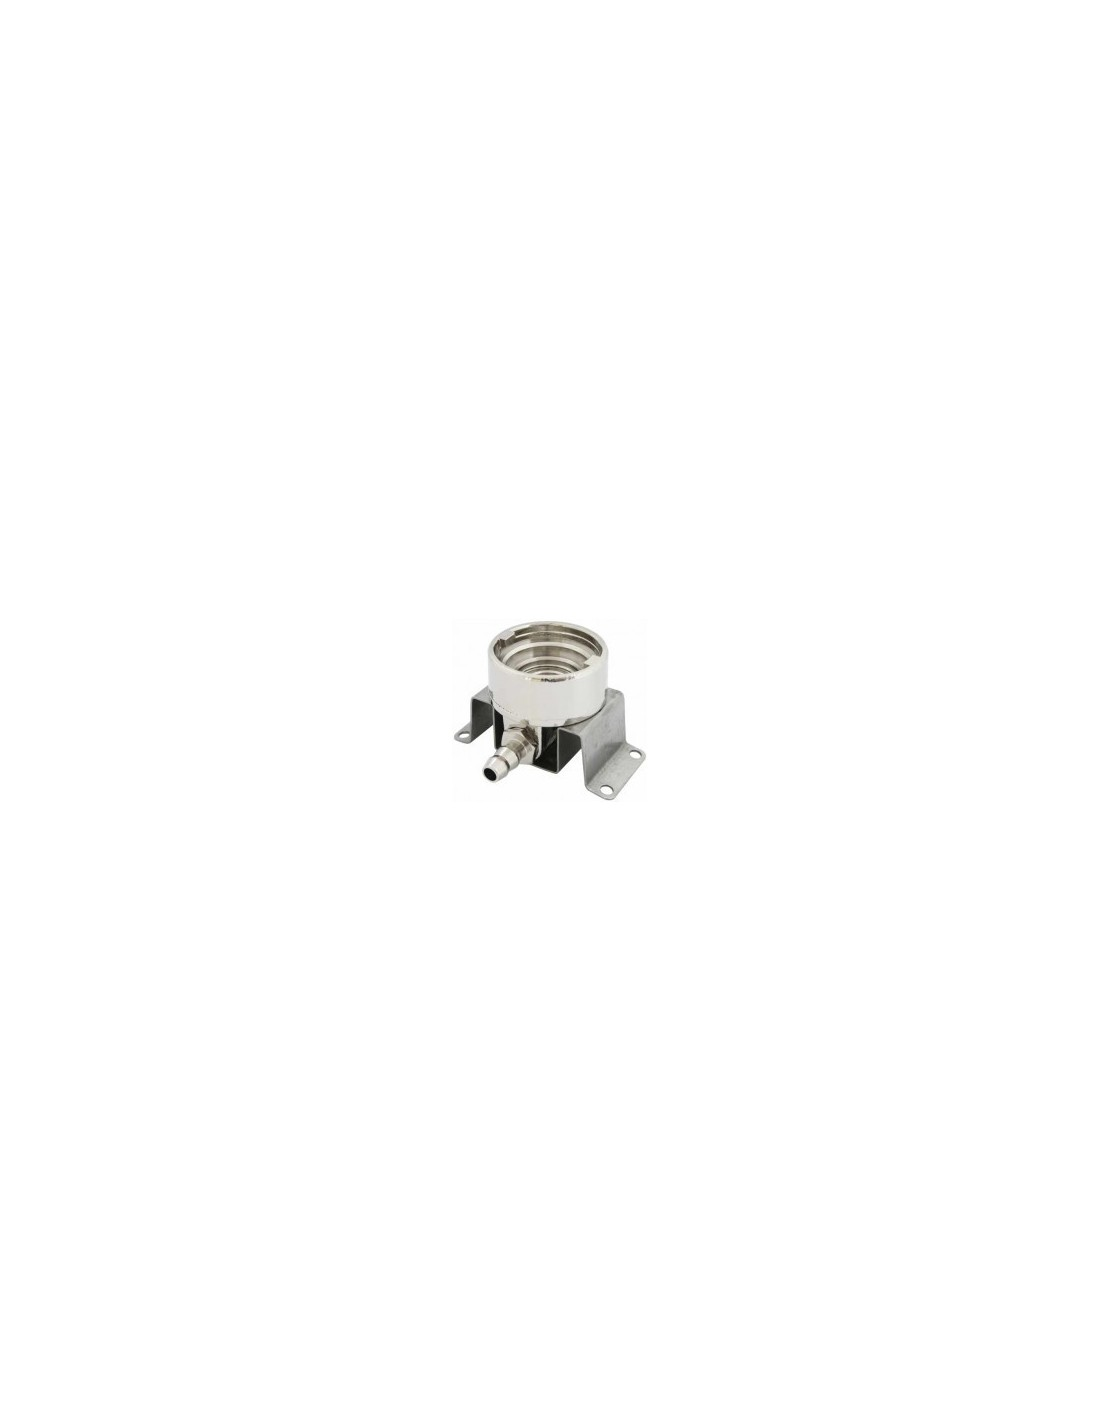 SAN01417 - Type-S cleaning adapter